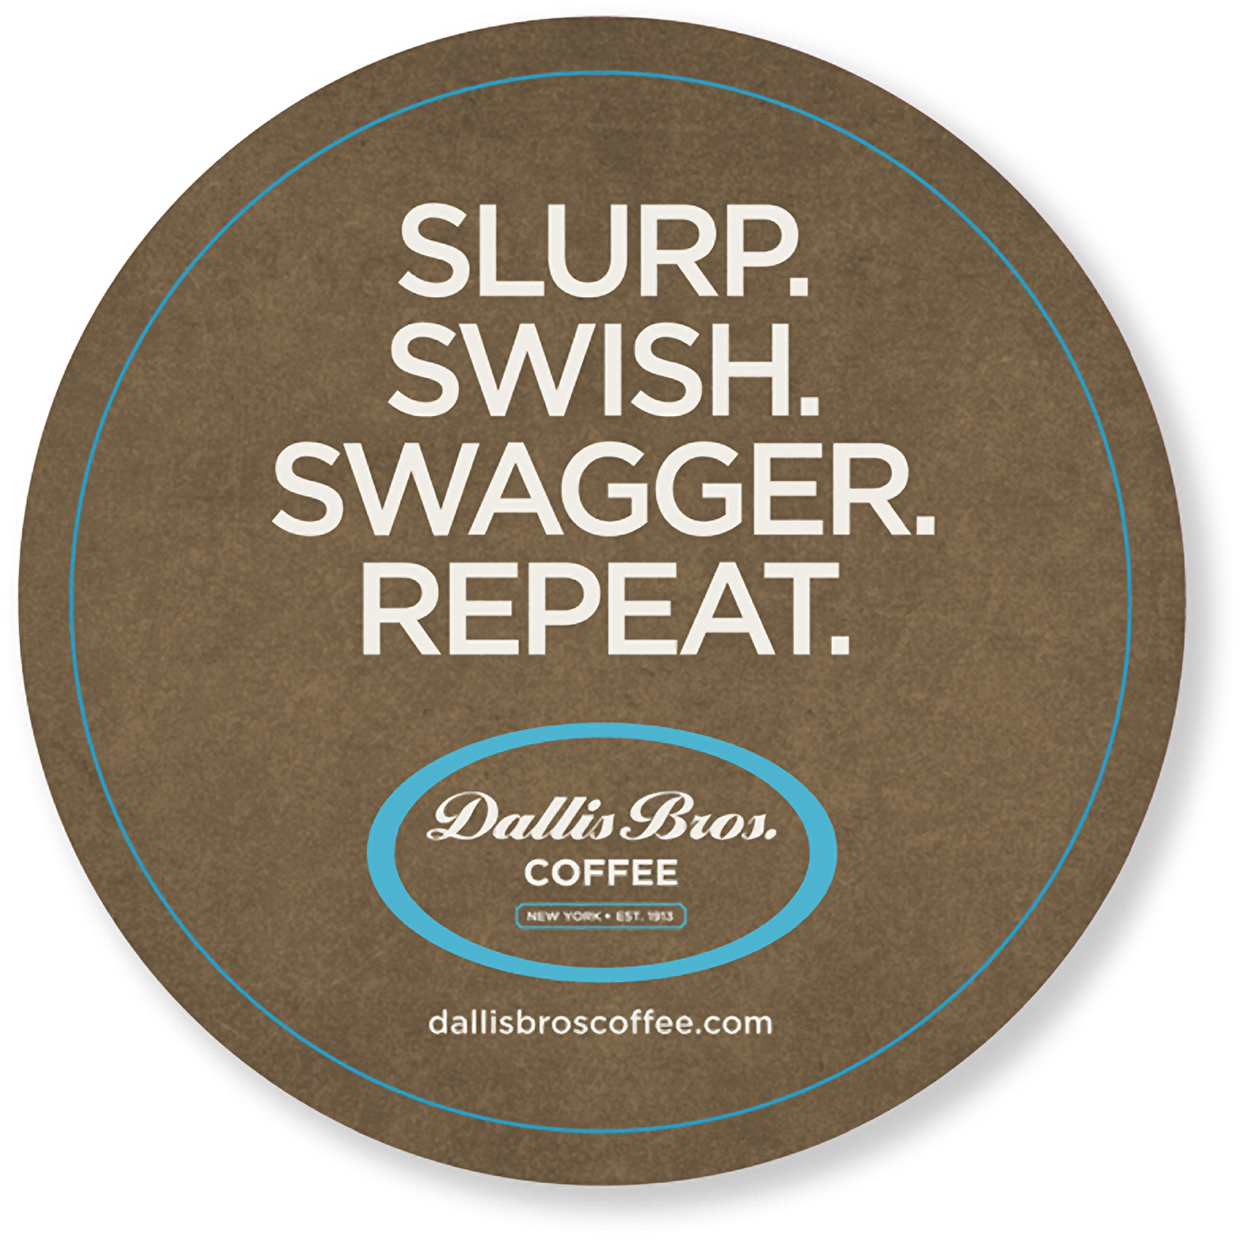 consumer_packaged_goods_dallas_bros_coffee_coaster.jpg